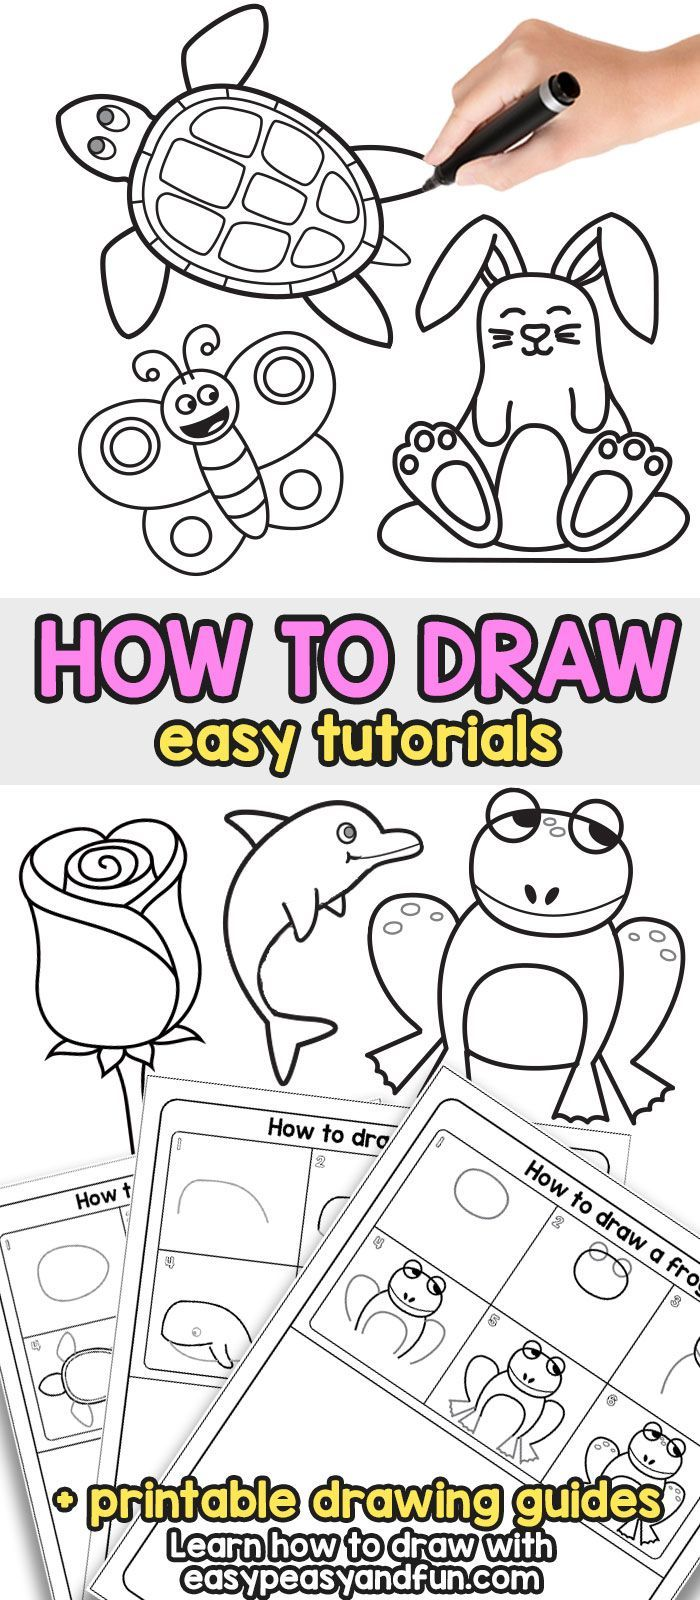 How to Draw - Step by Step Drawing For Kids and Beginners ...